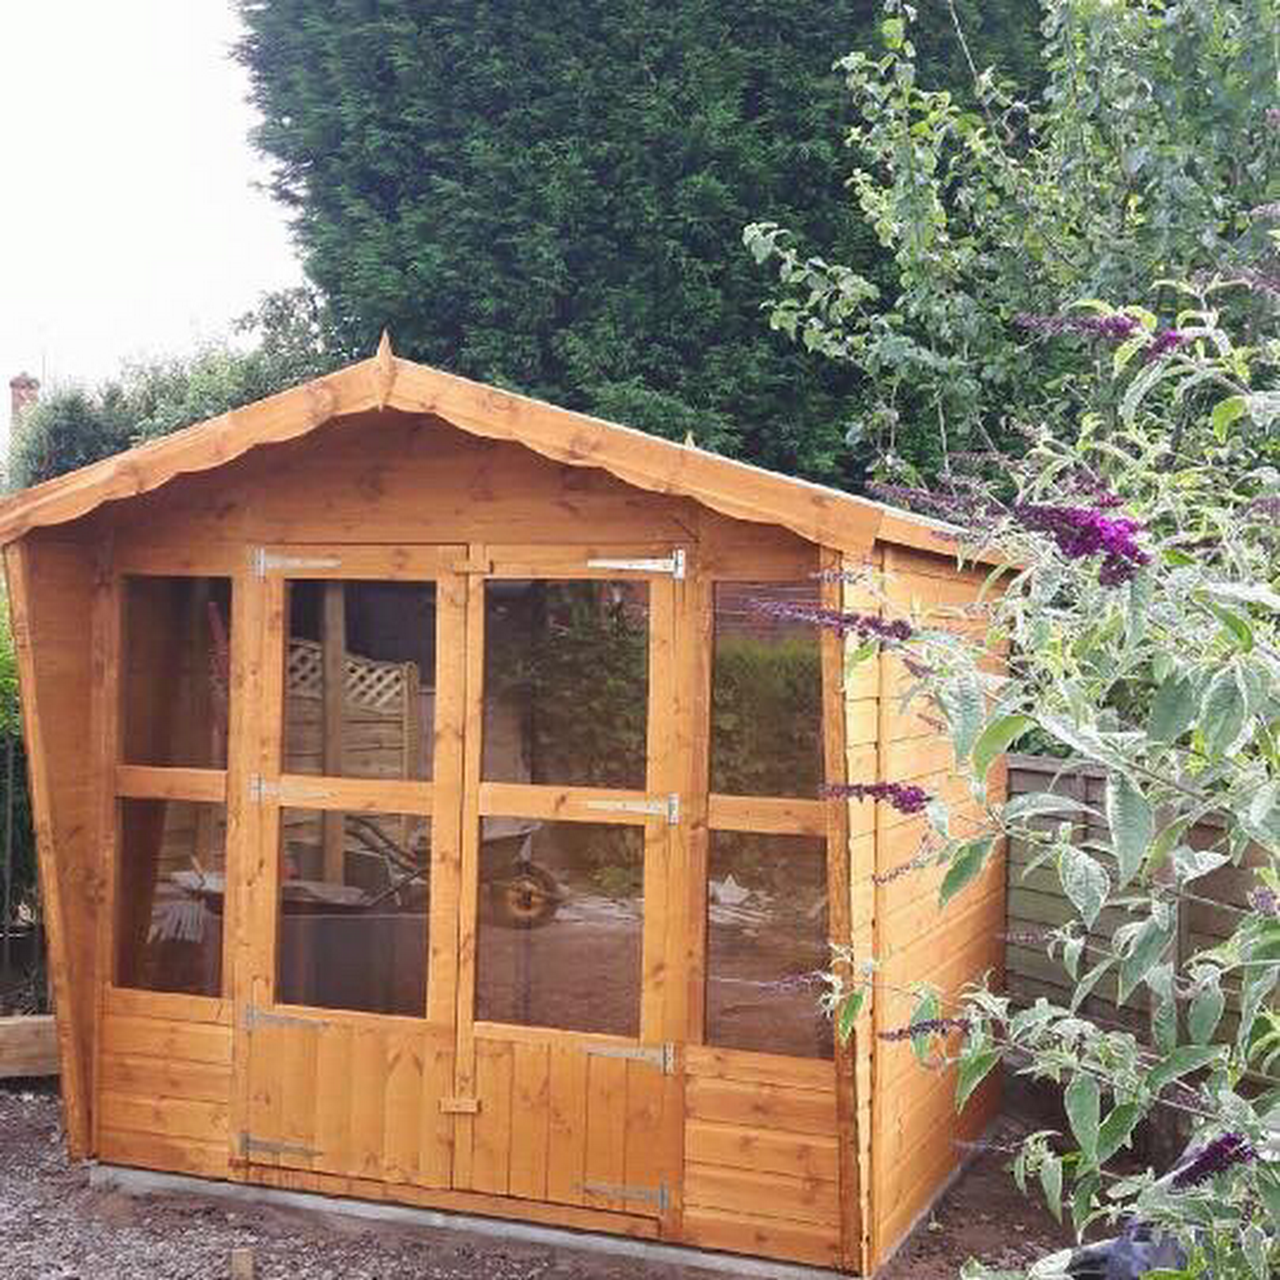 Blakes sheds And Fencing - Garden Building Supplier